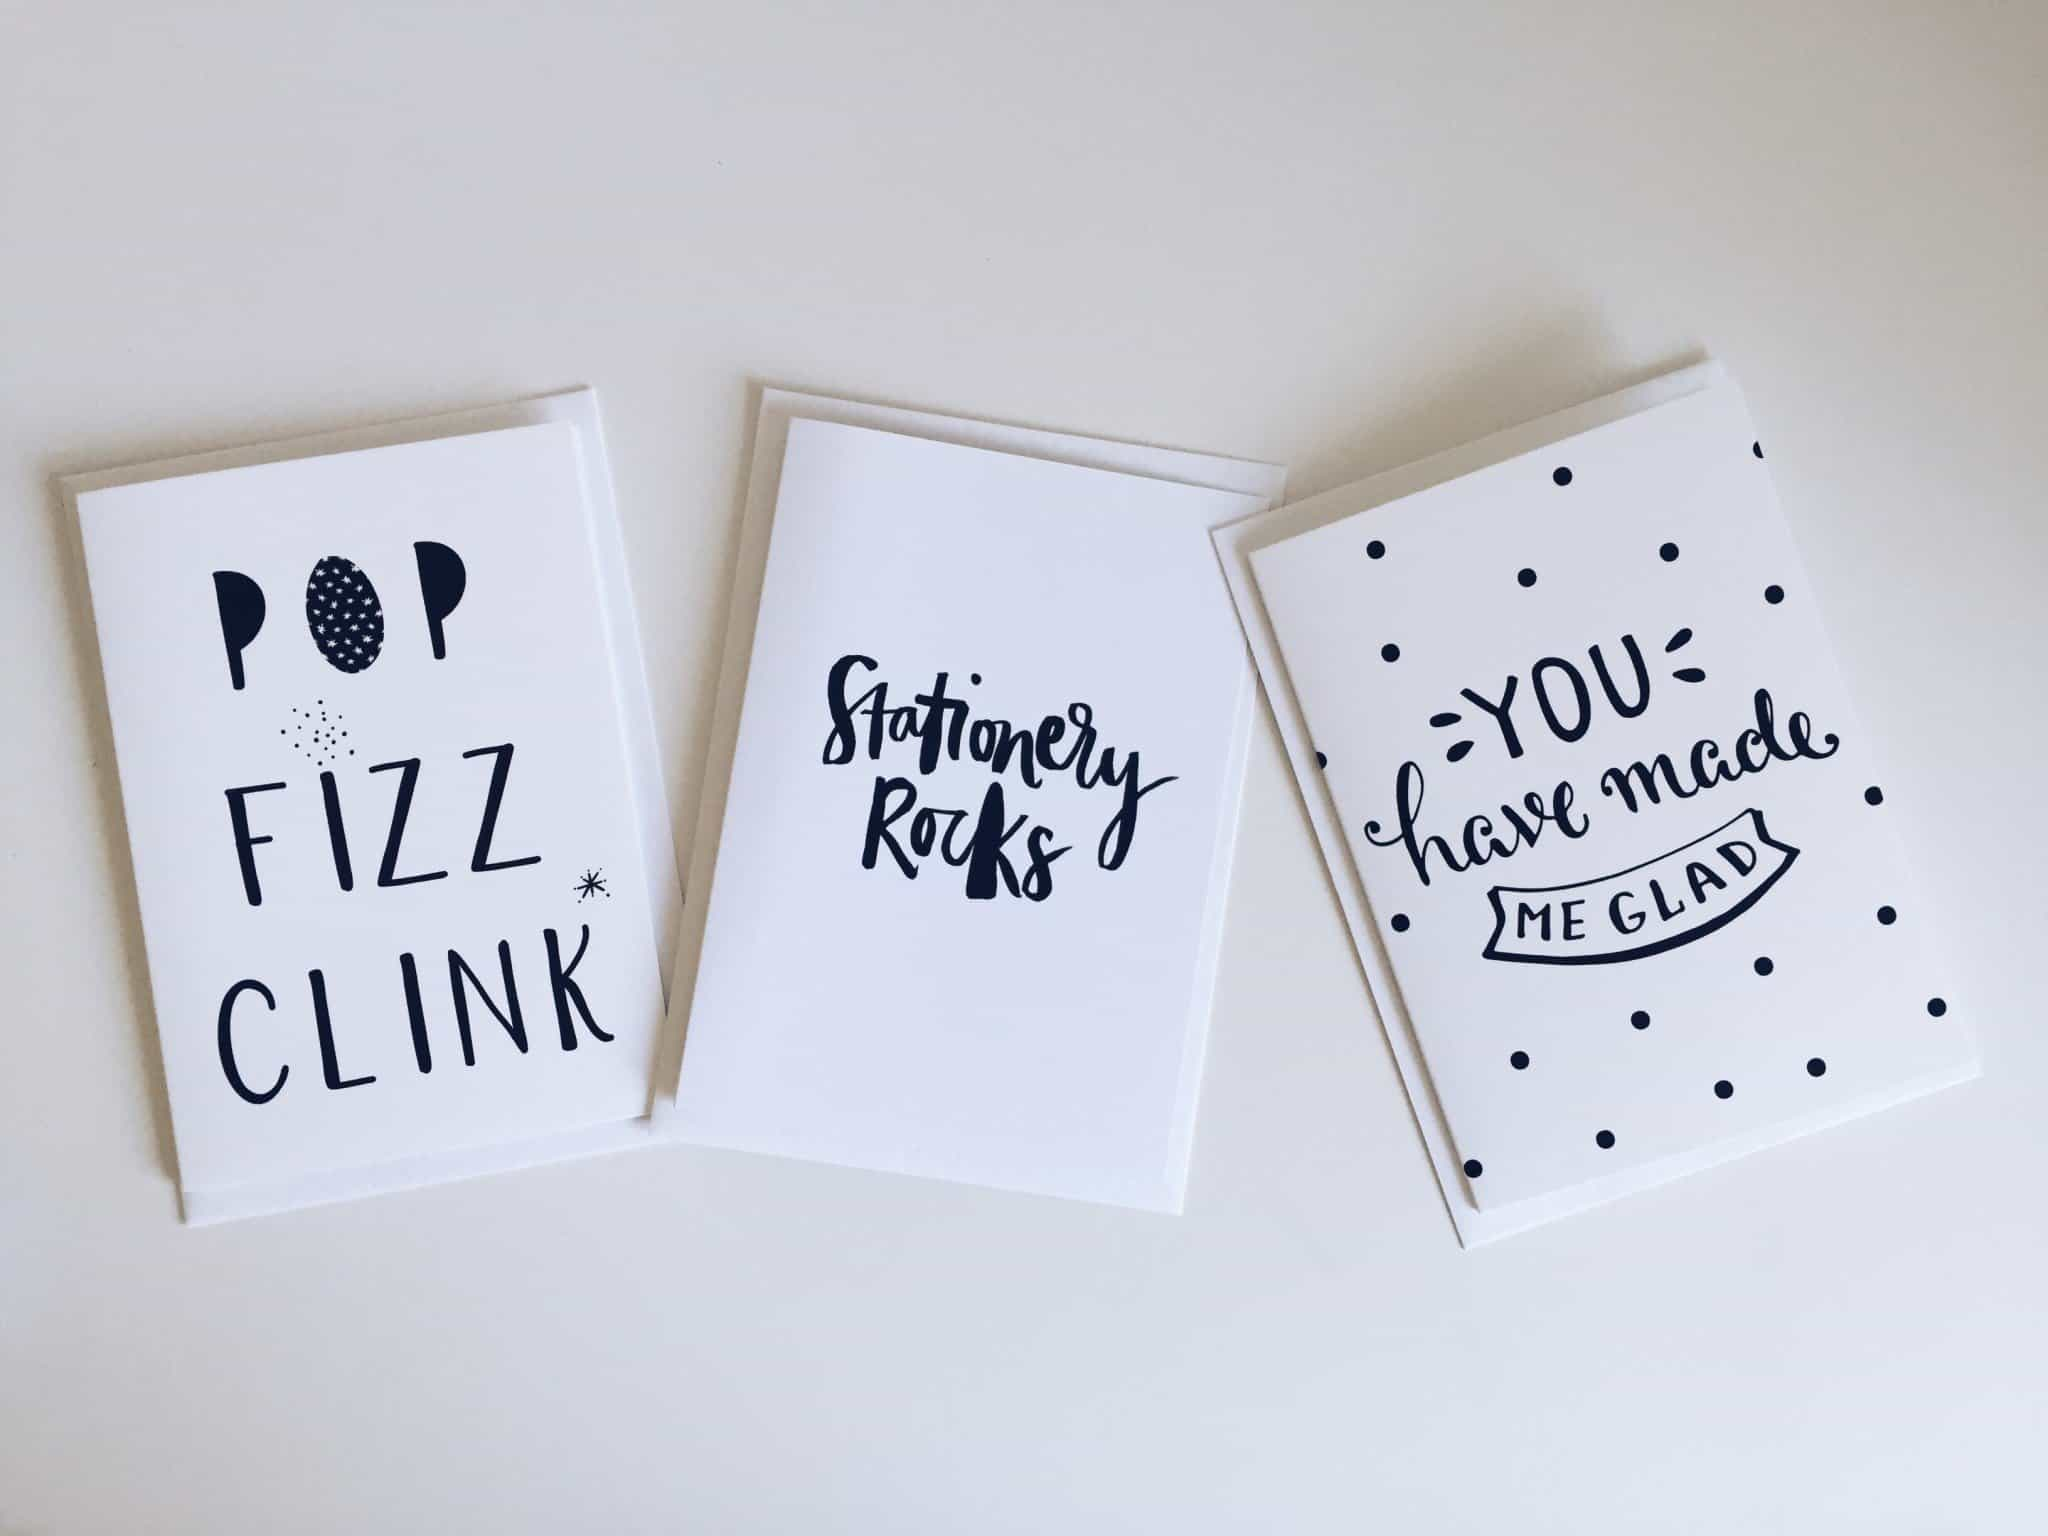 Three monochrome greetings cards from Proper Post